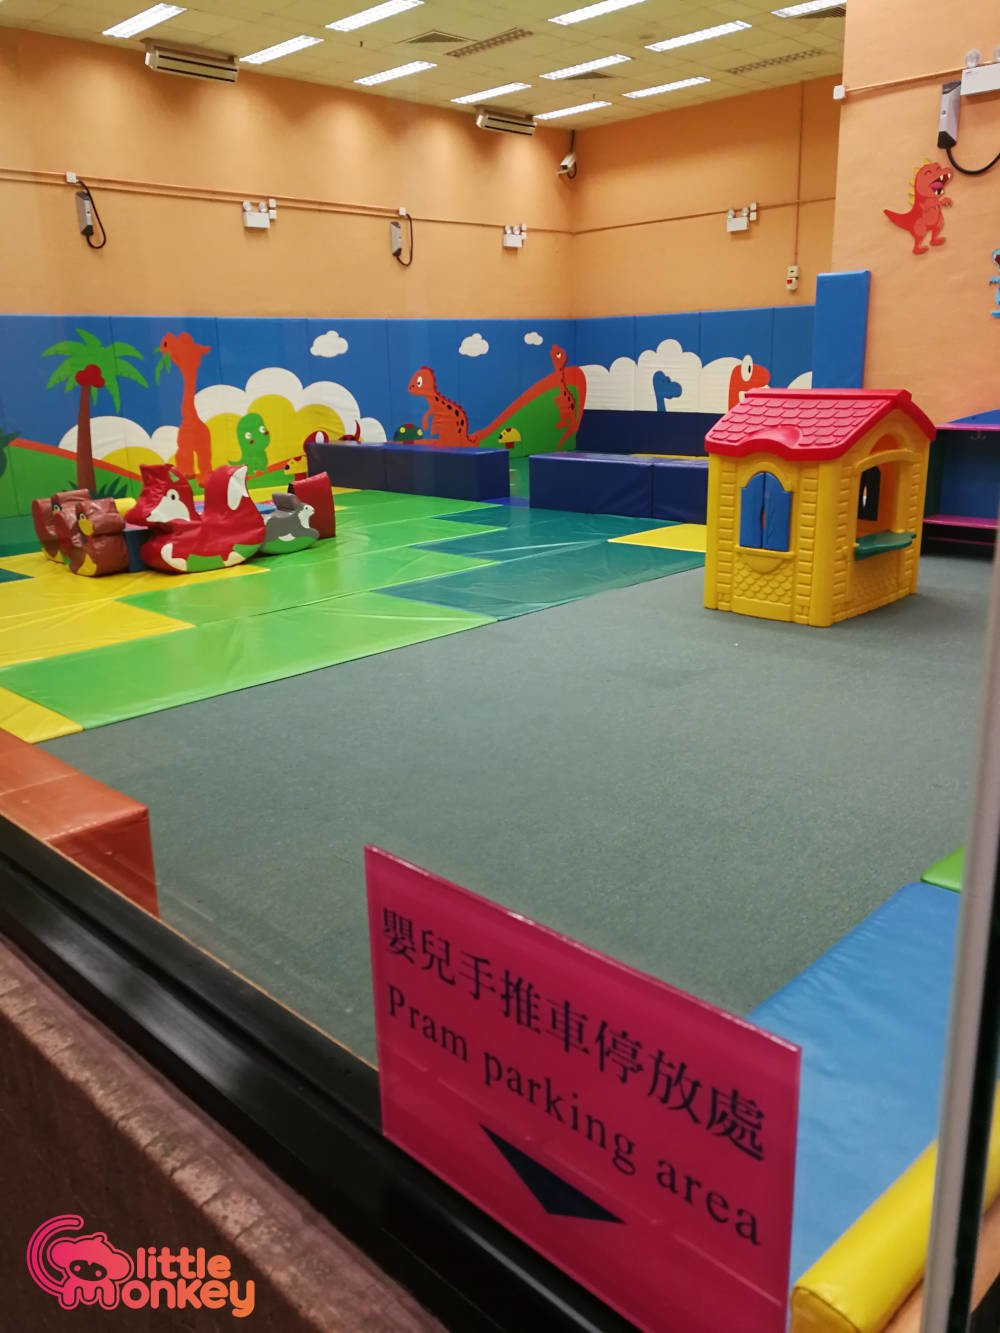 Smithfield Sports Centre's playroom for children